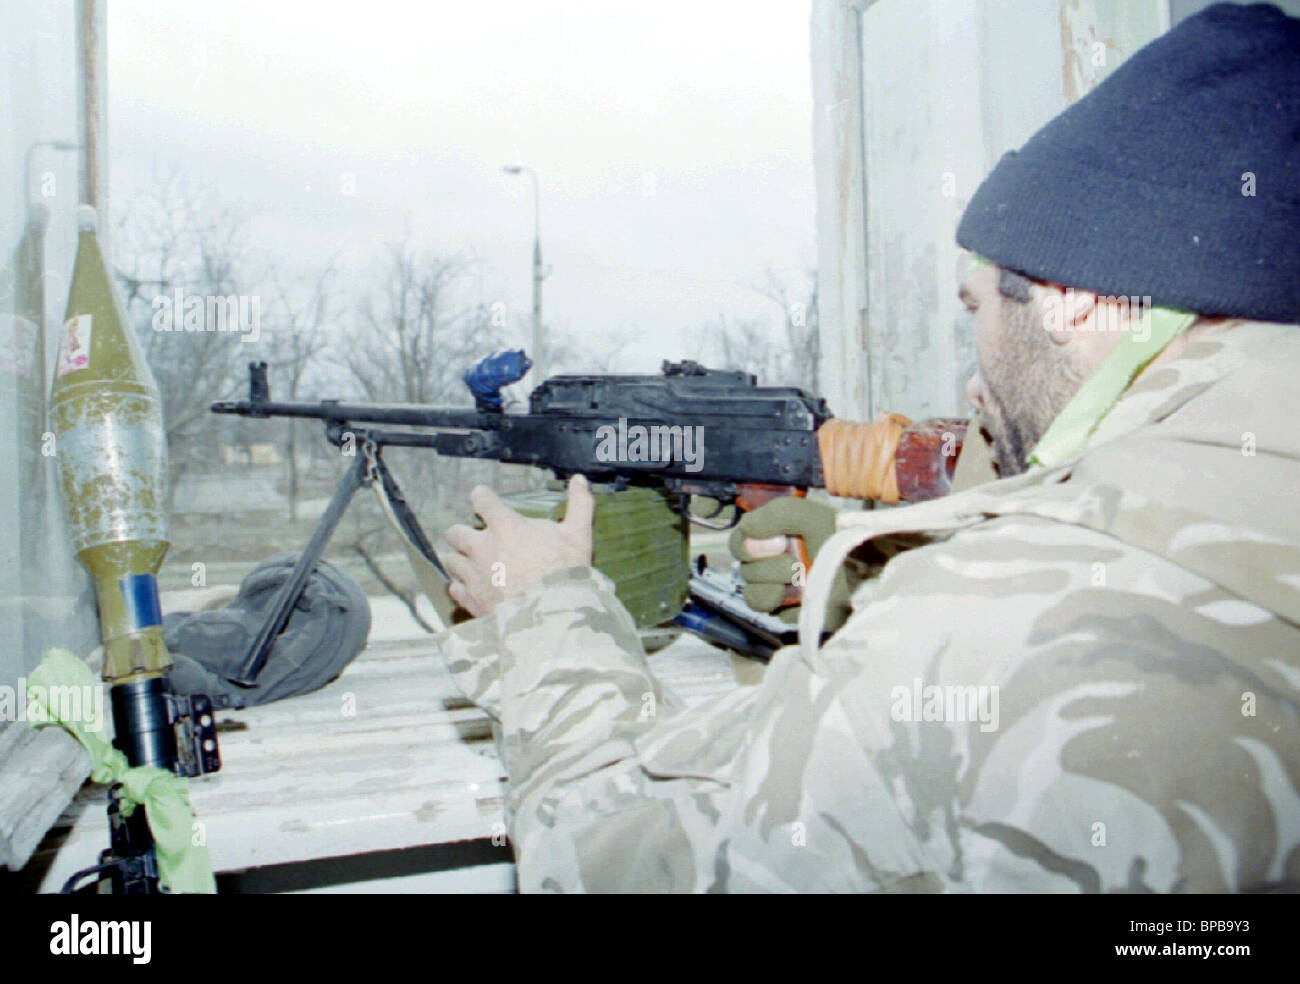 situation in Chechnya - Stock Image